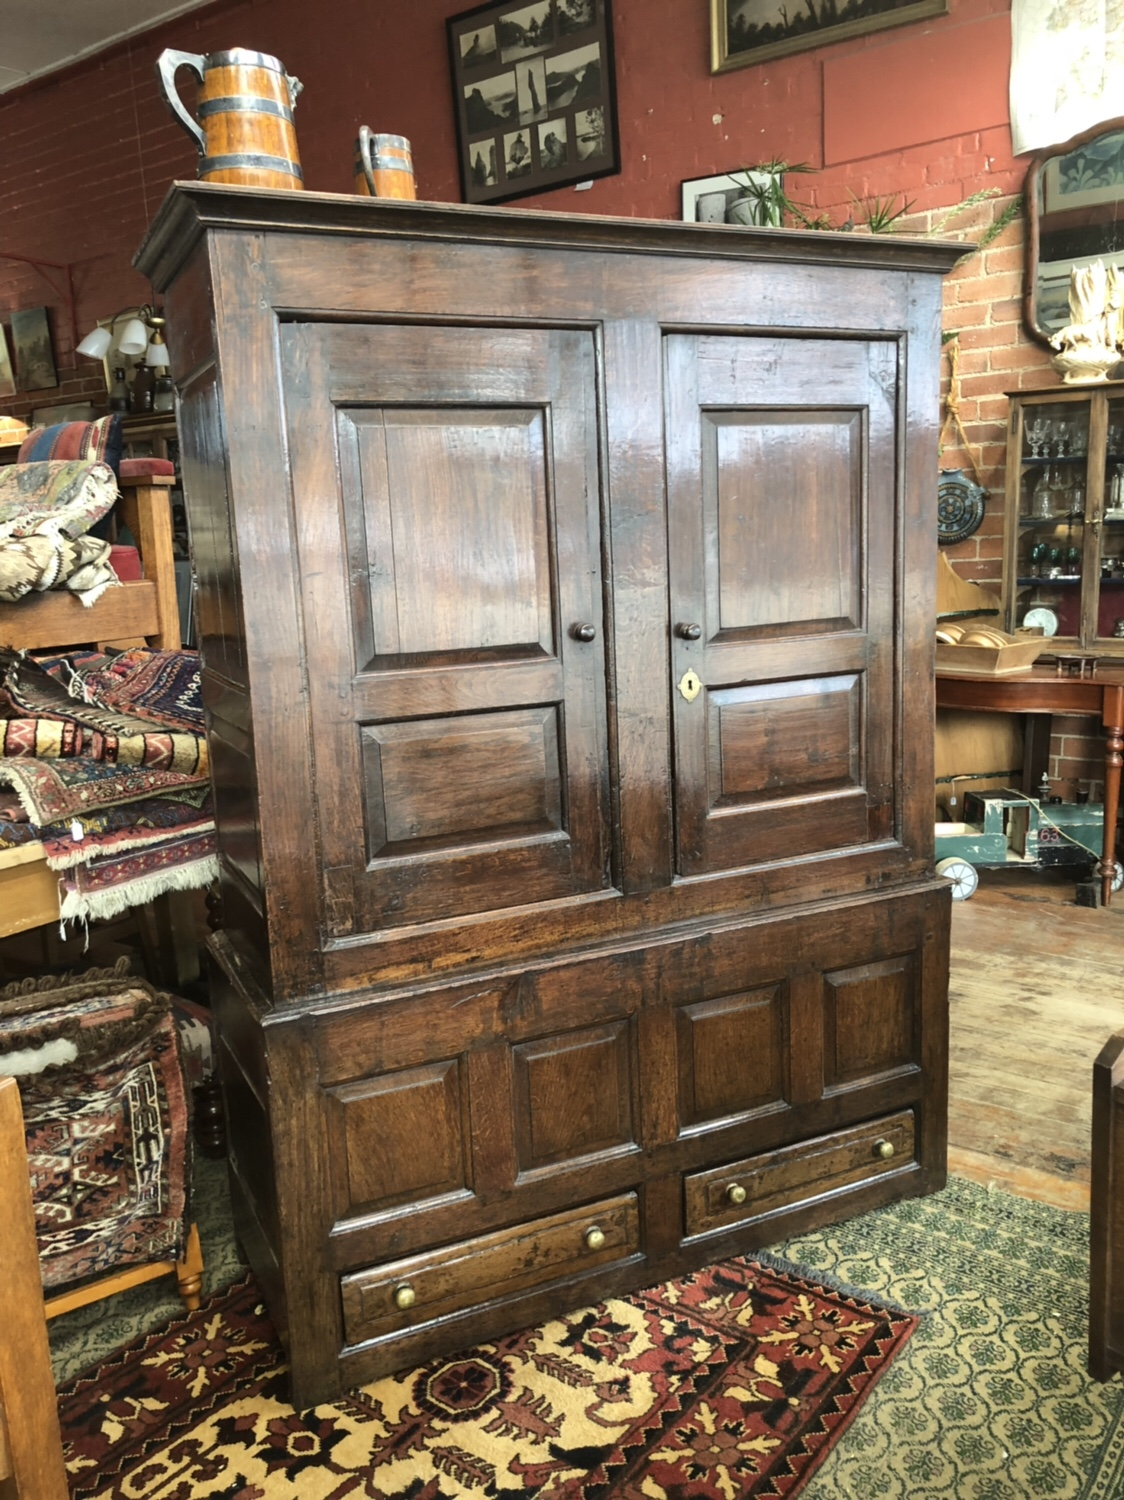 91. 18th Century Oak Cupboard